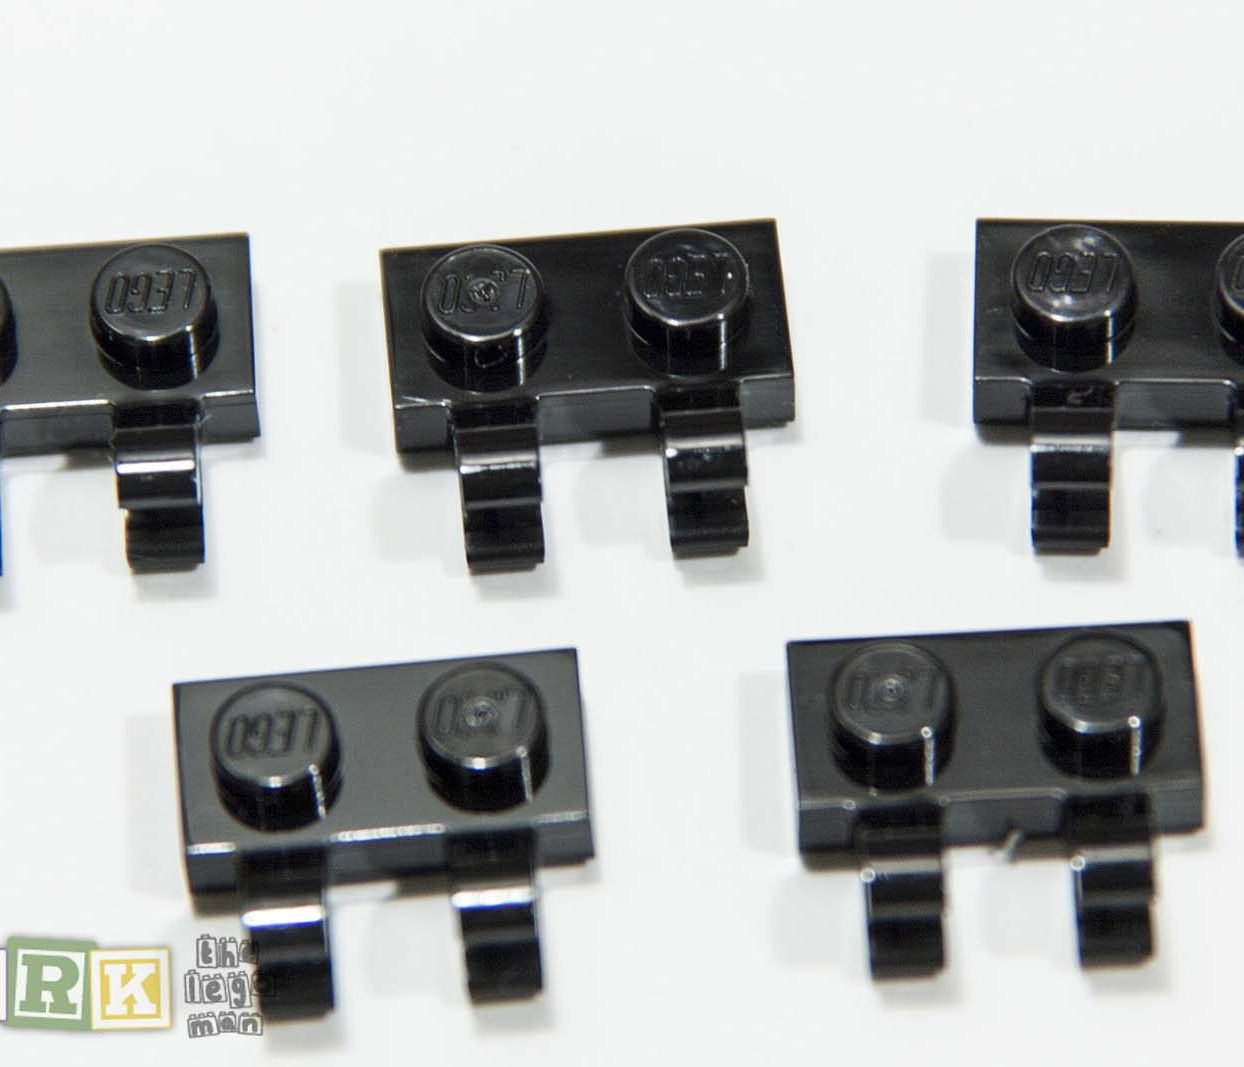 NEW Lego 60470 Job Lot 5x Black Plate 1x2 with Clips Horizontal 4556158